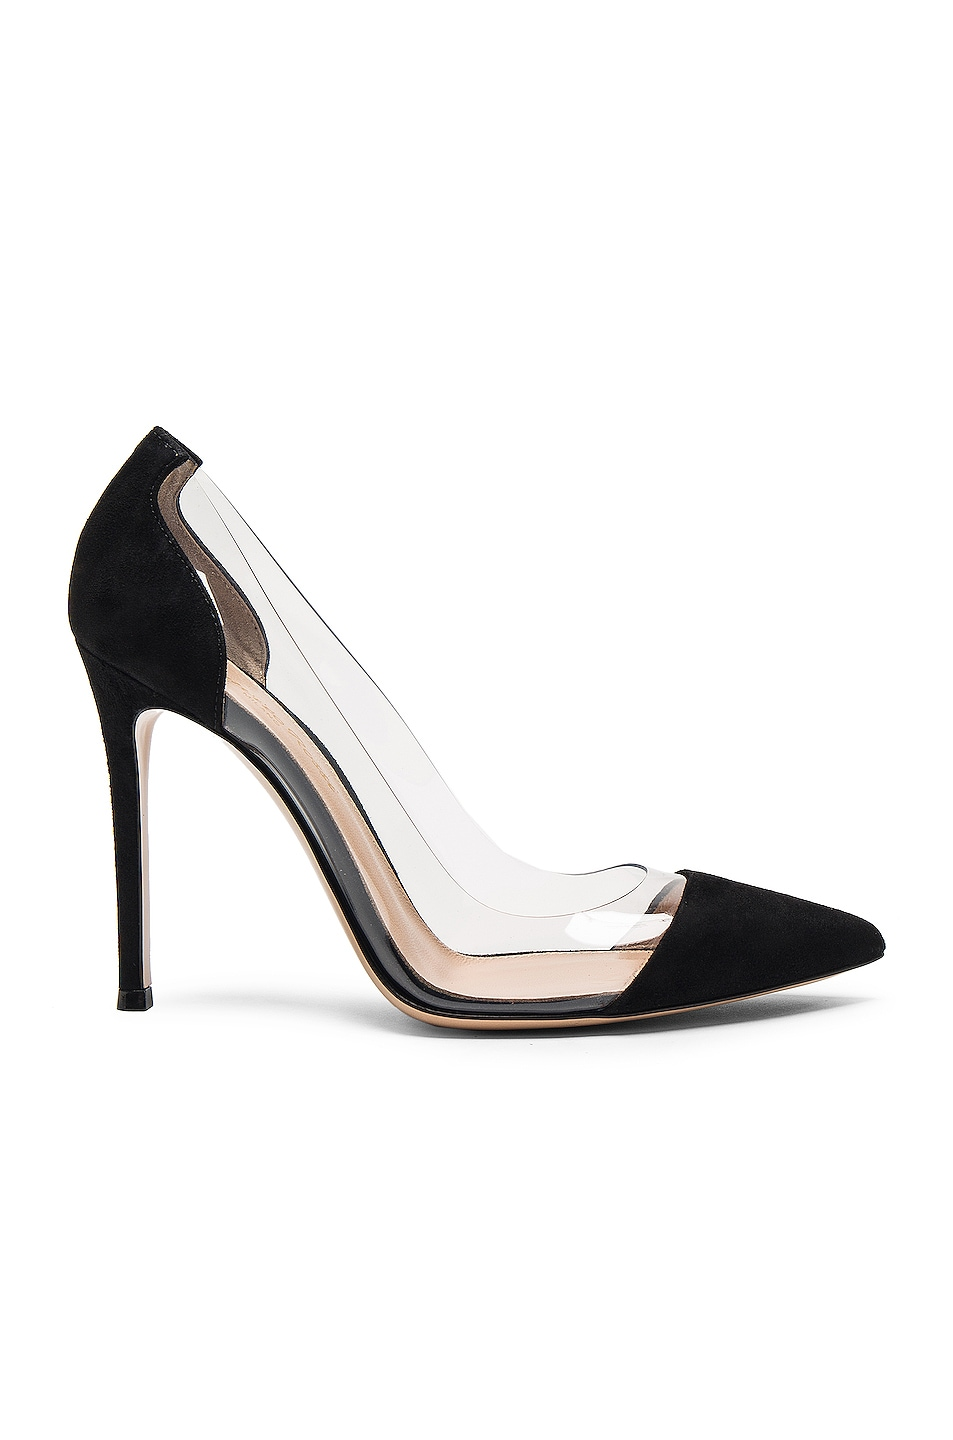 Image 1 of Gianvito Rossi Suede & Plexy Pumps in Black